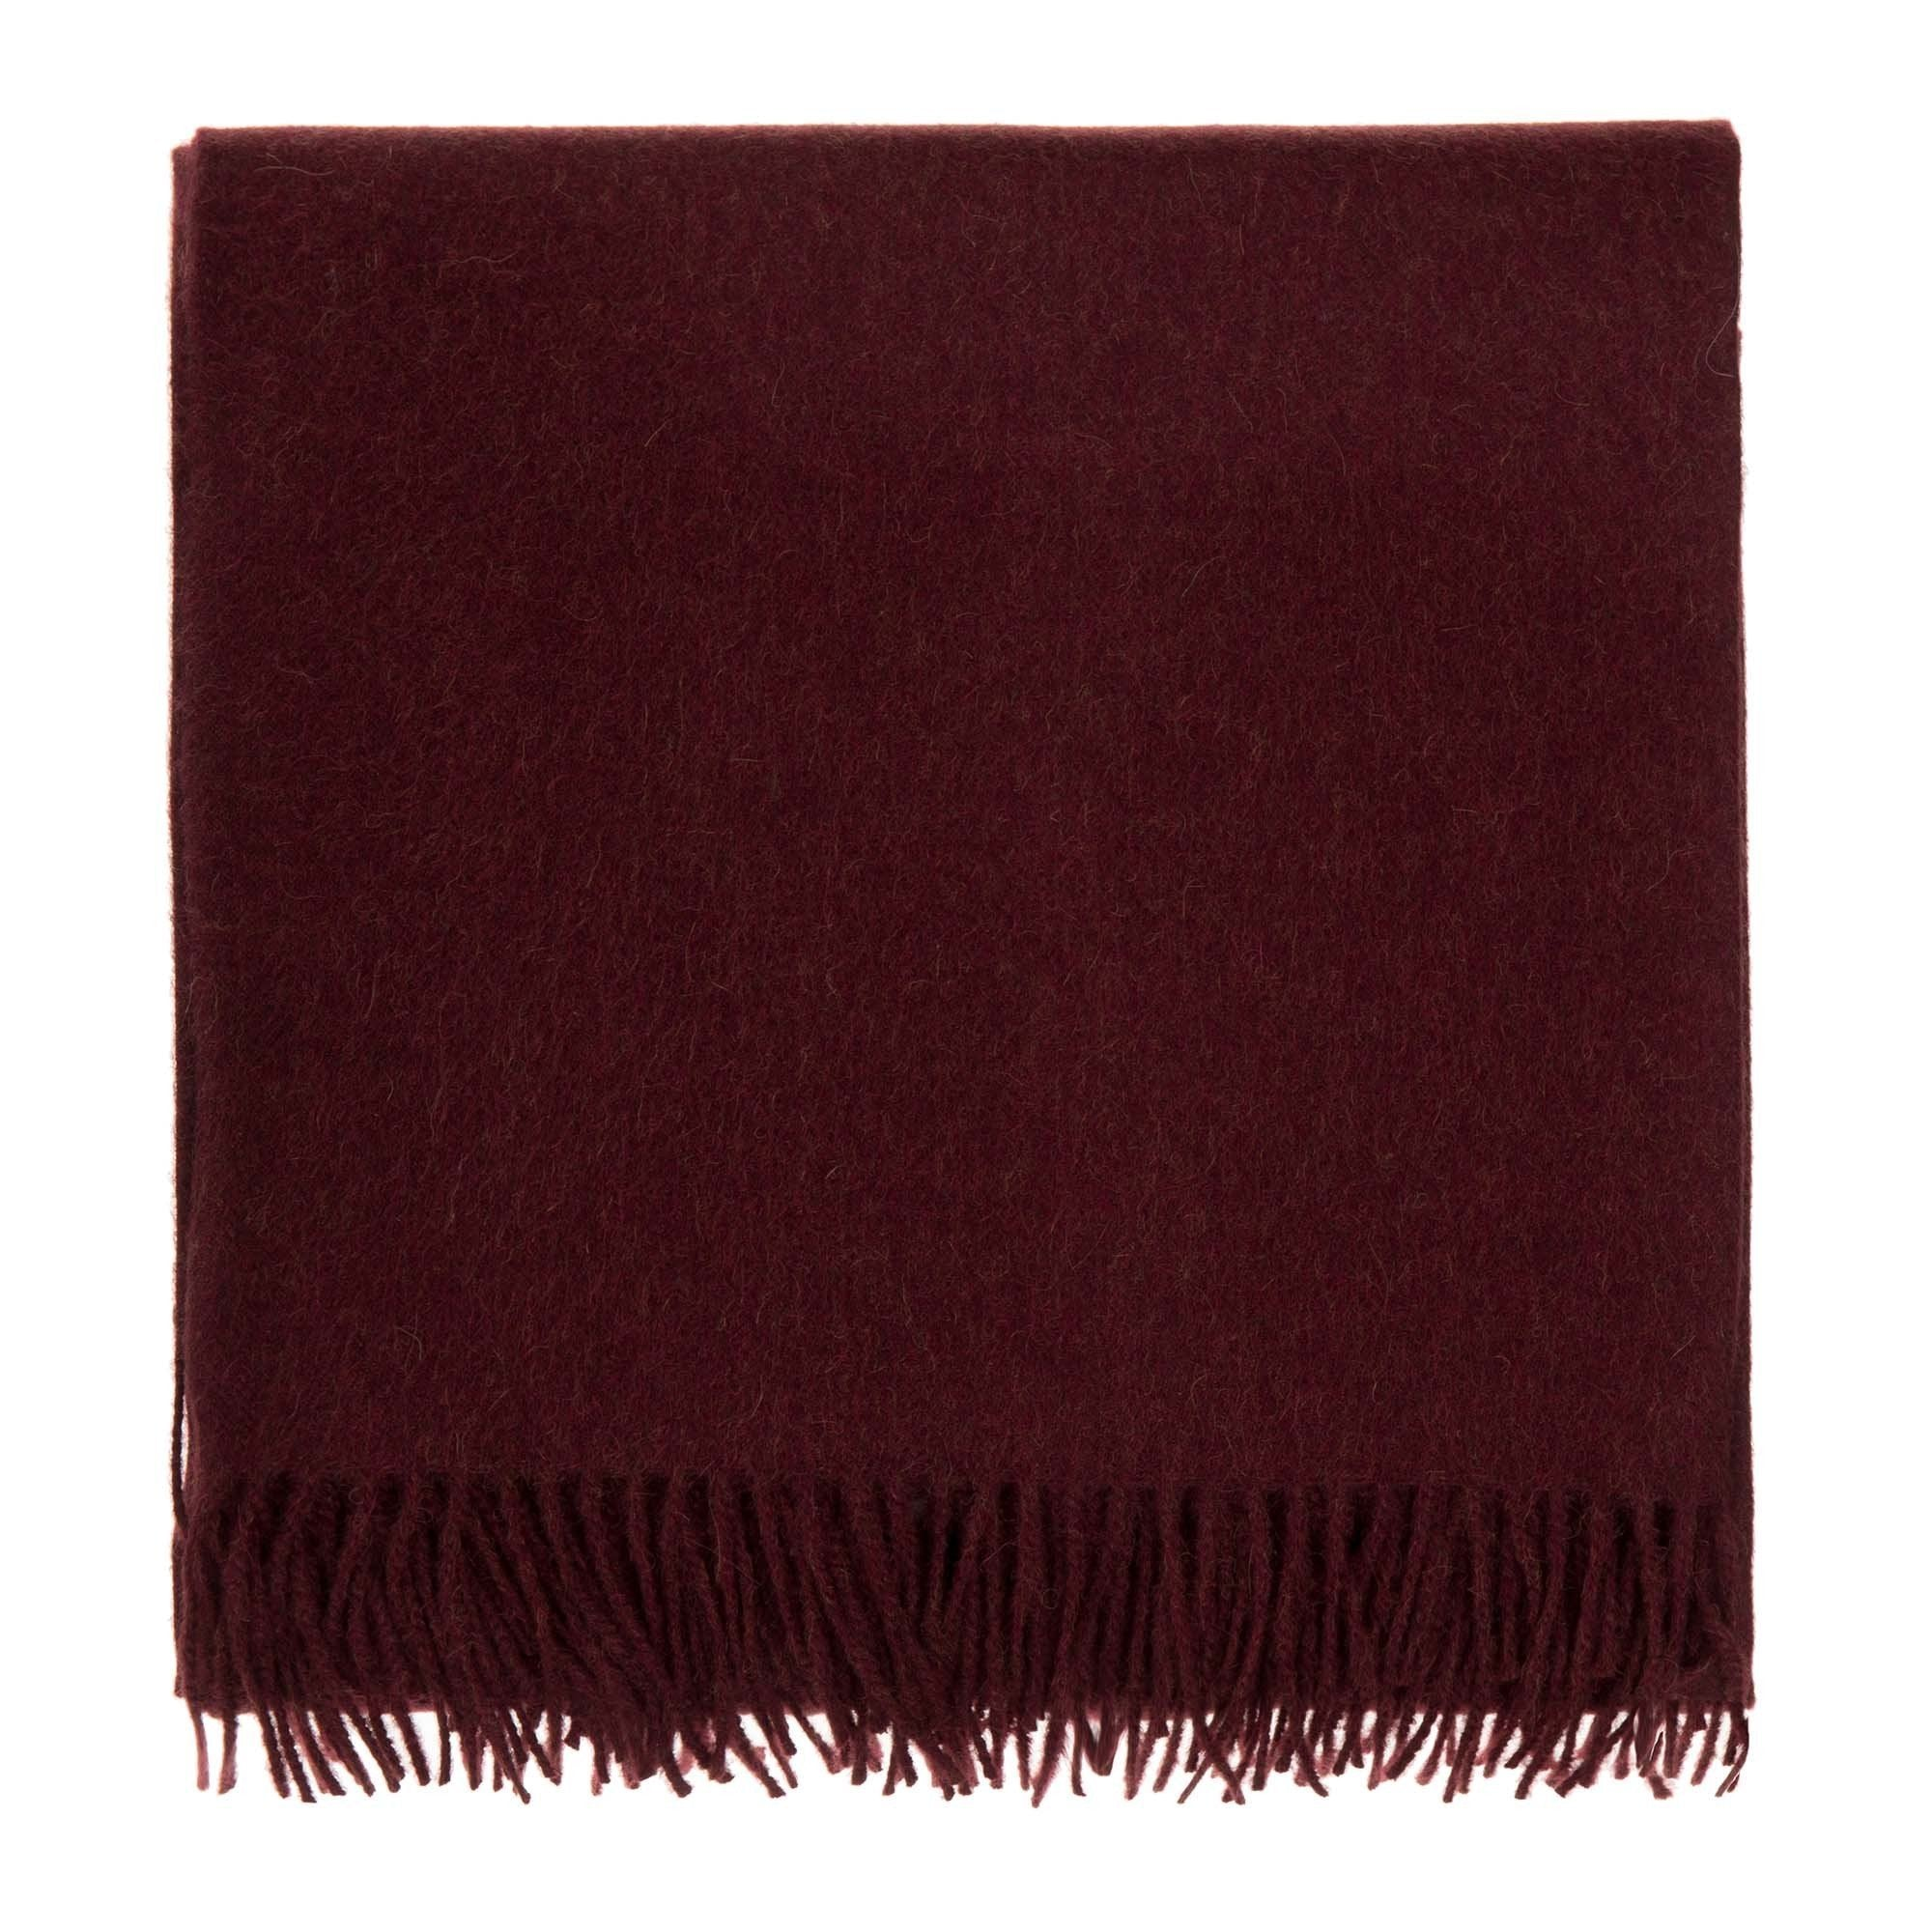 Arica blanket, bordeaux red, 100% baby alpaca wool